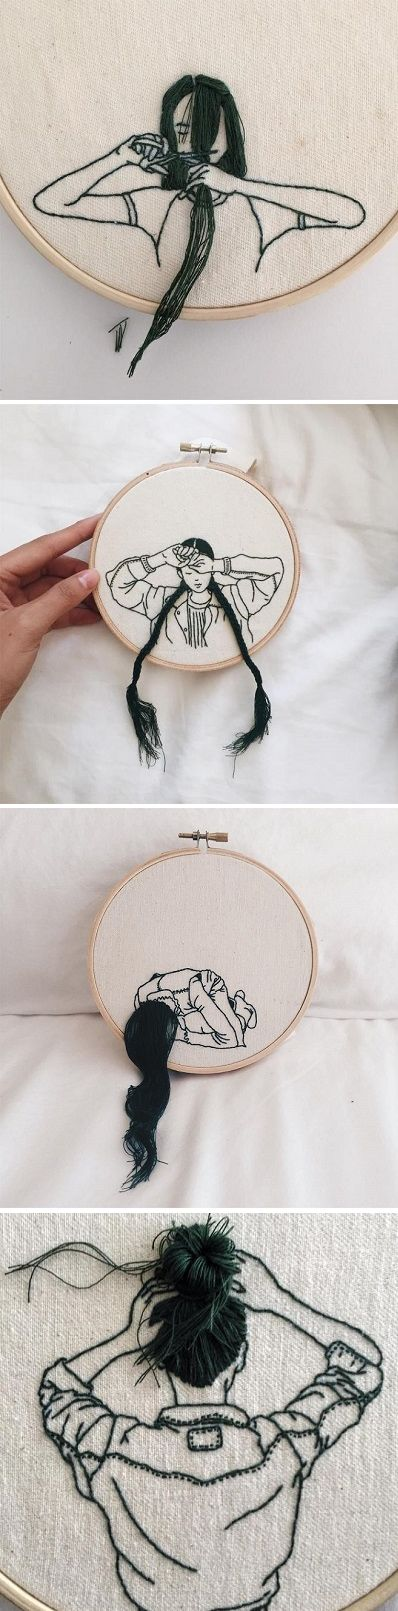 Embroidery by Sheena Liam / on the Blog!